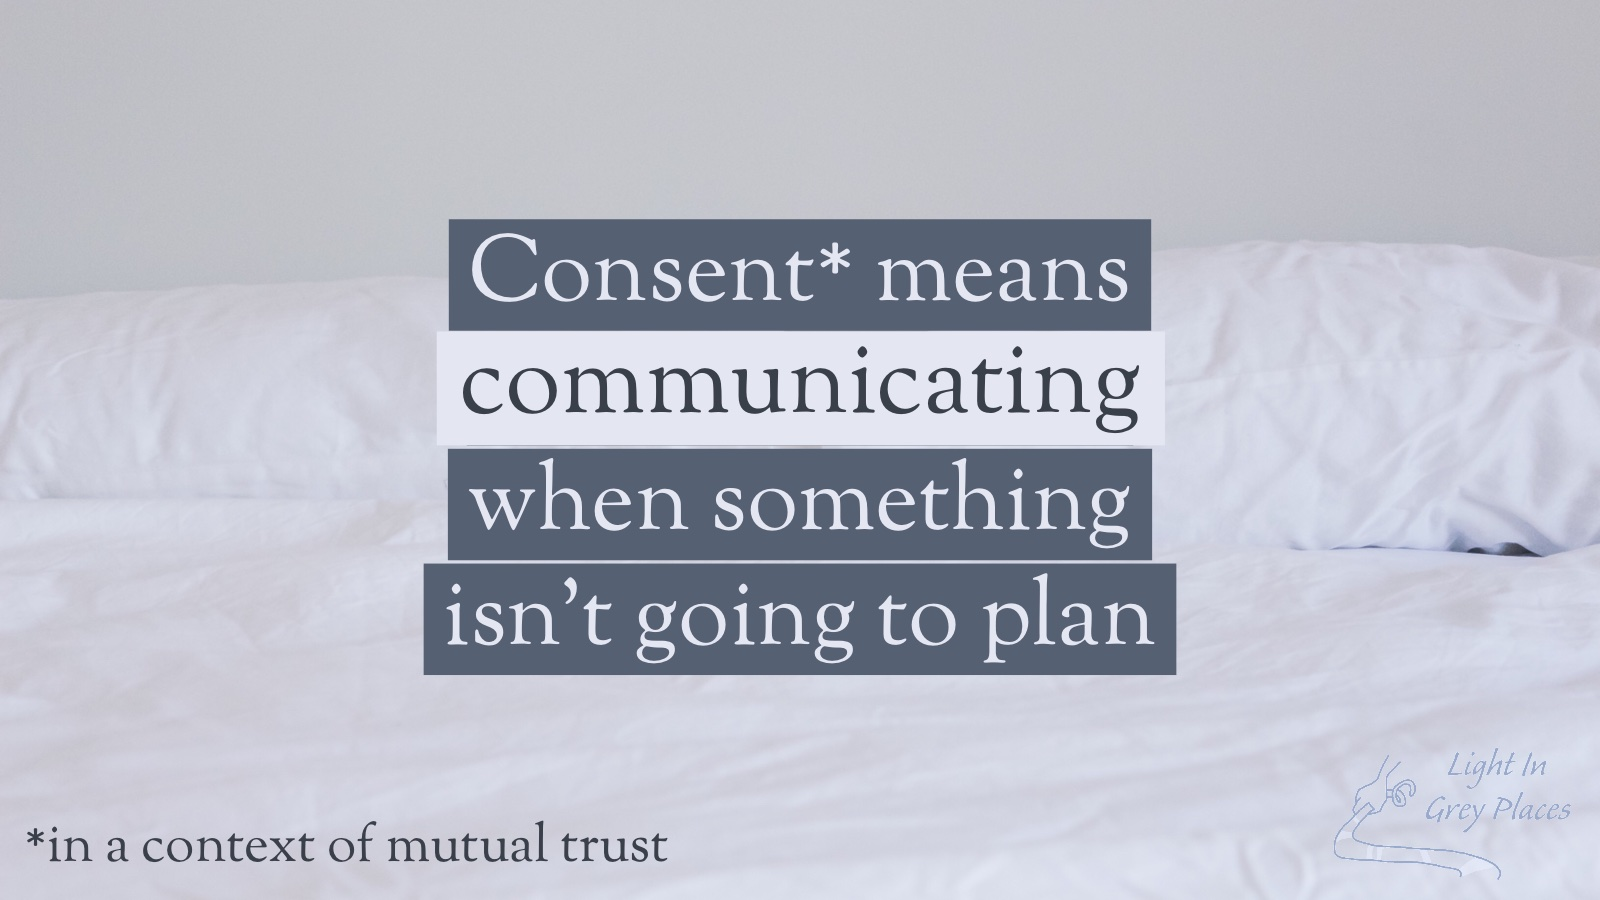 Consent means communicating when something isn't going to plan (in a context of mutual trust). Light in Grey Places